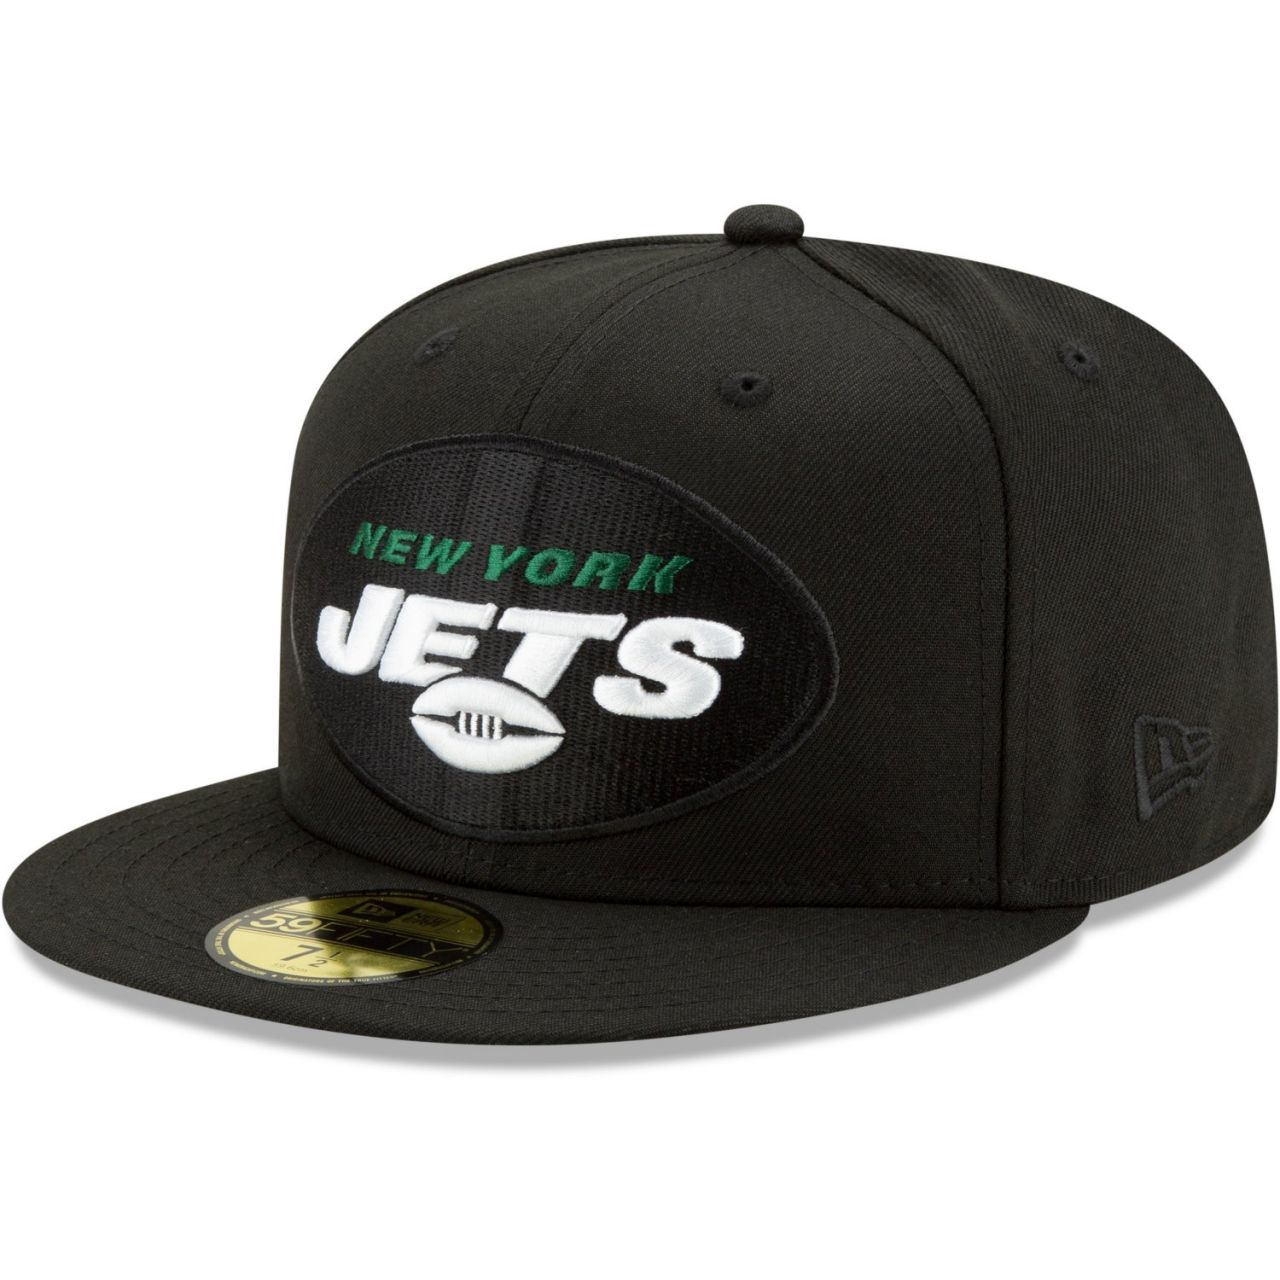 amfoo - New Era 59Fifty Fitted Cap - ELEMENTS New York Jets